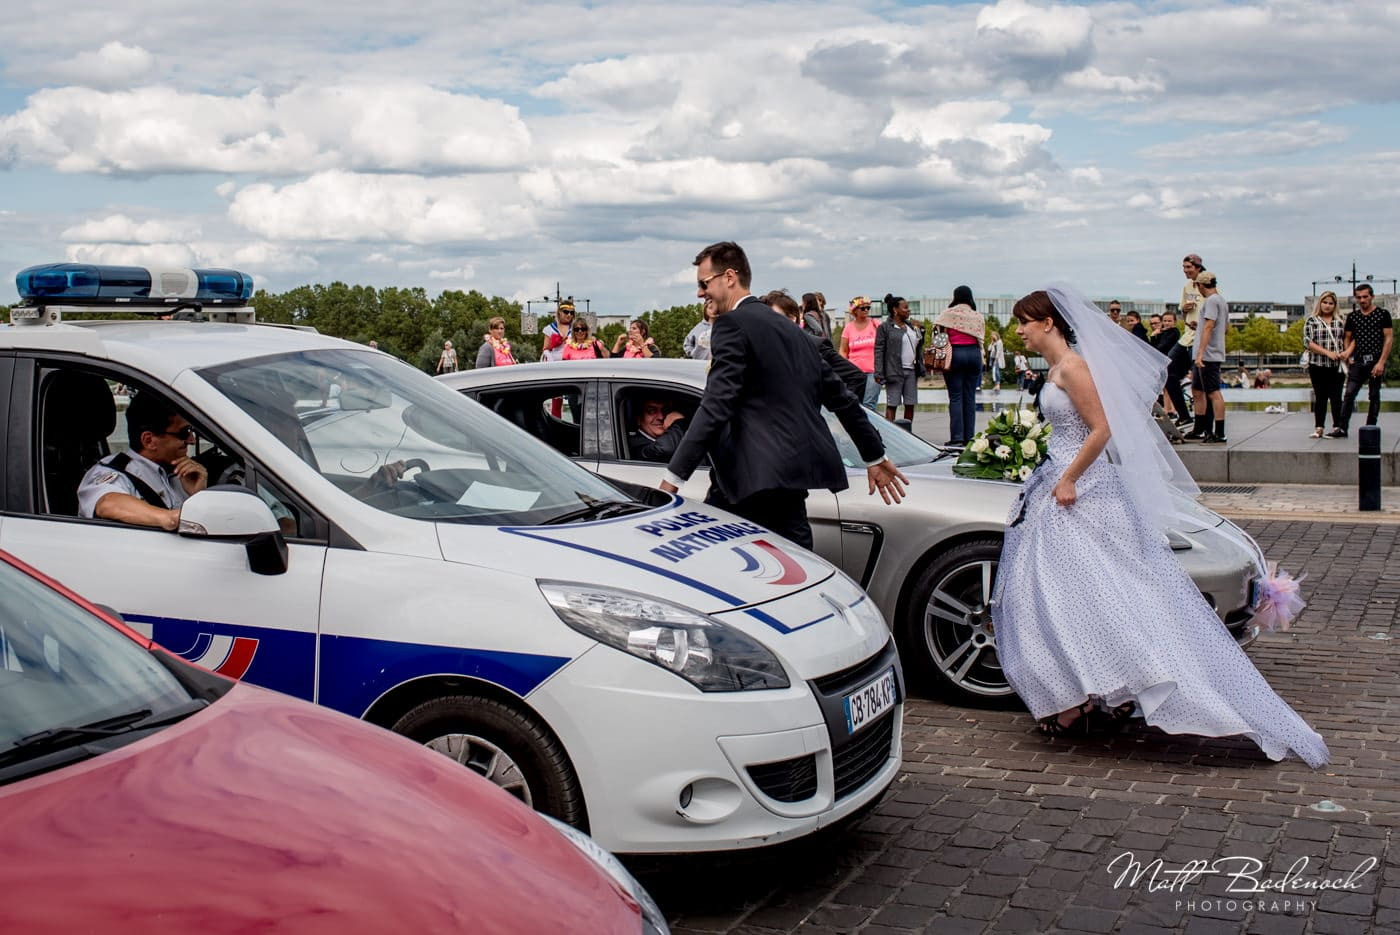 french bride in traffic stopped by police | bordeaux street photography